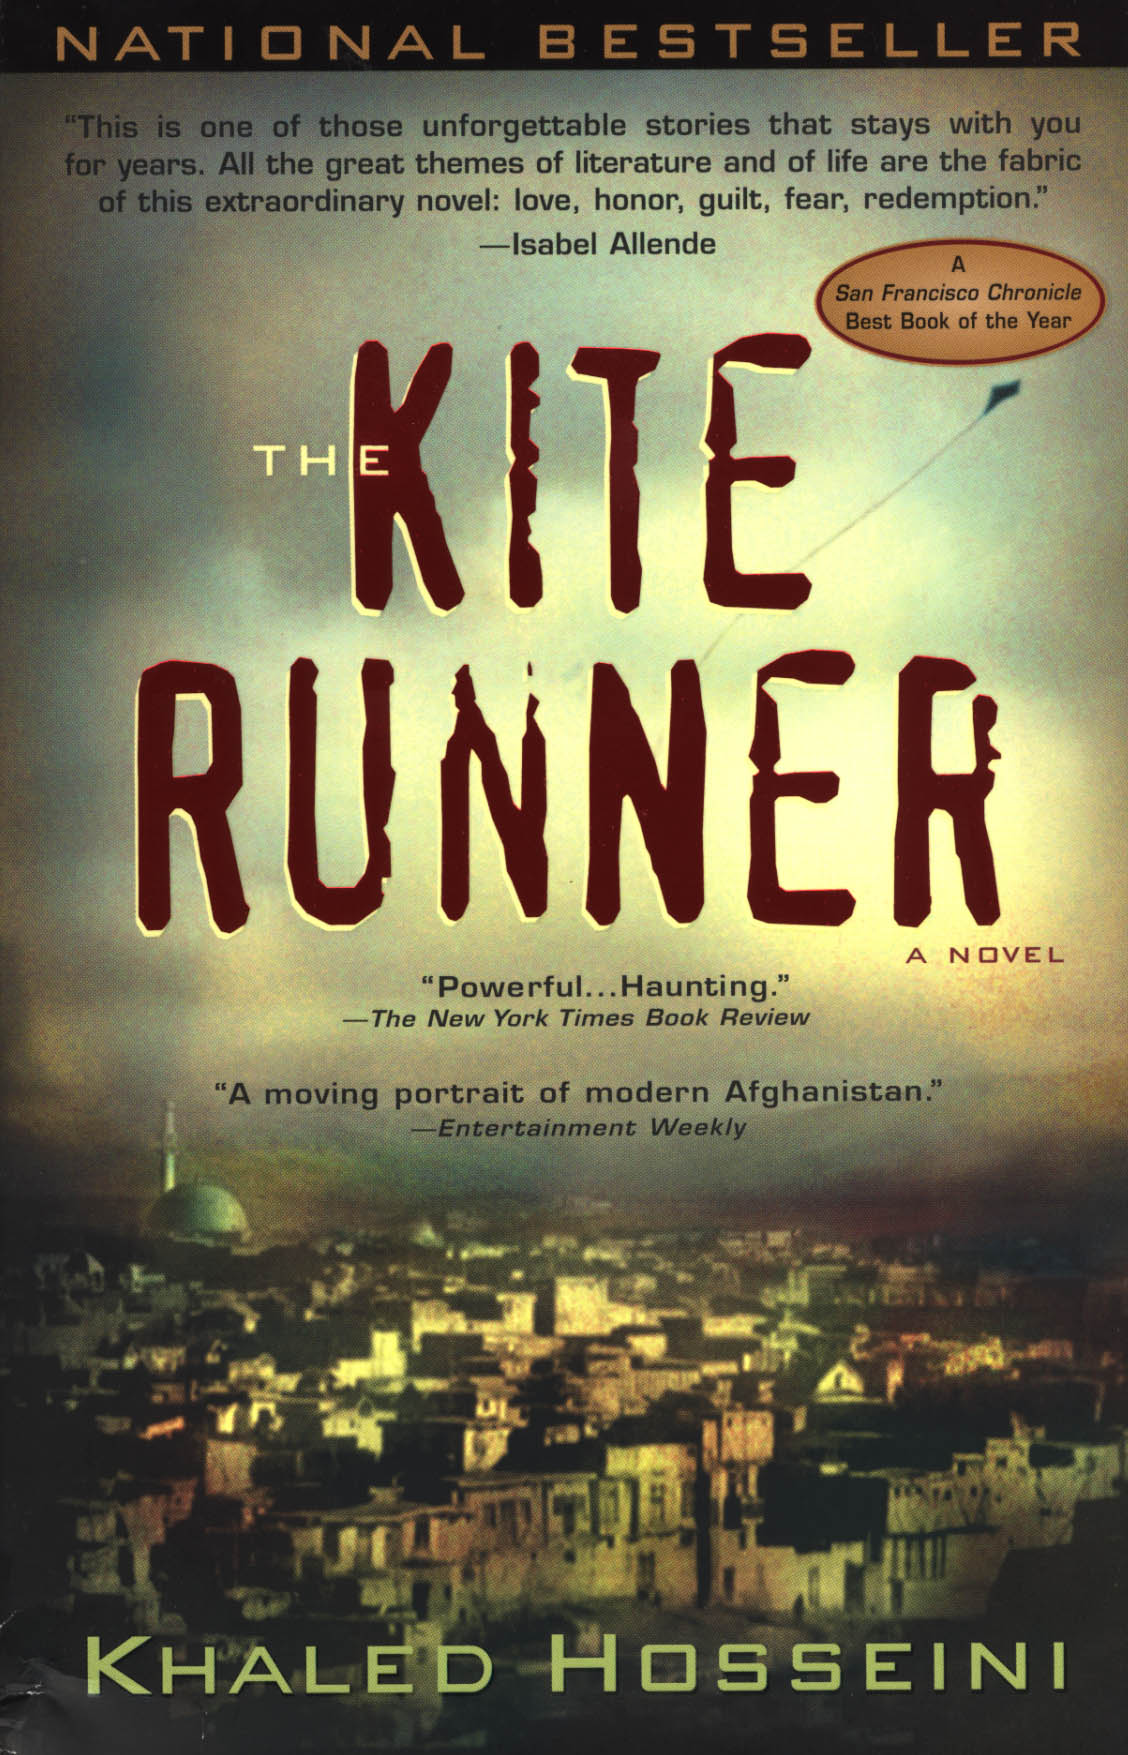 the kite runner by khaled hosseini in asianweek bookdragon kite runner